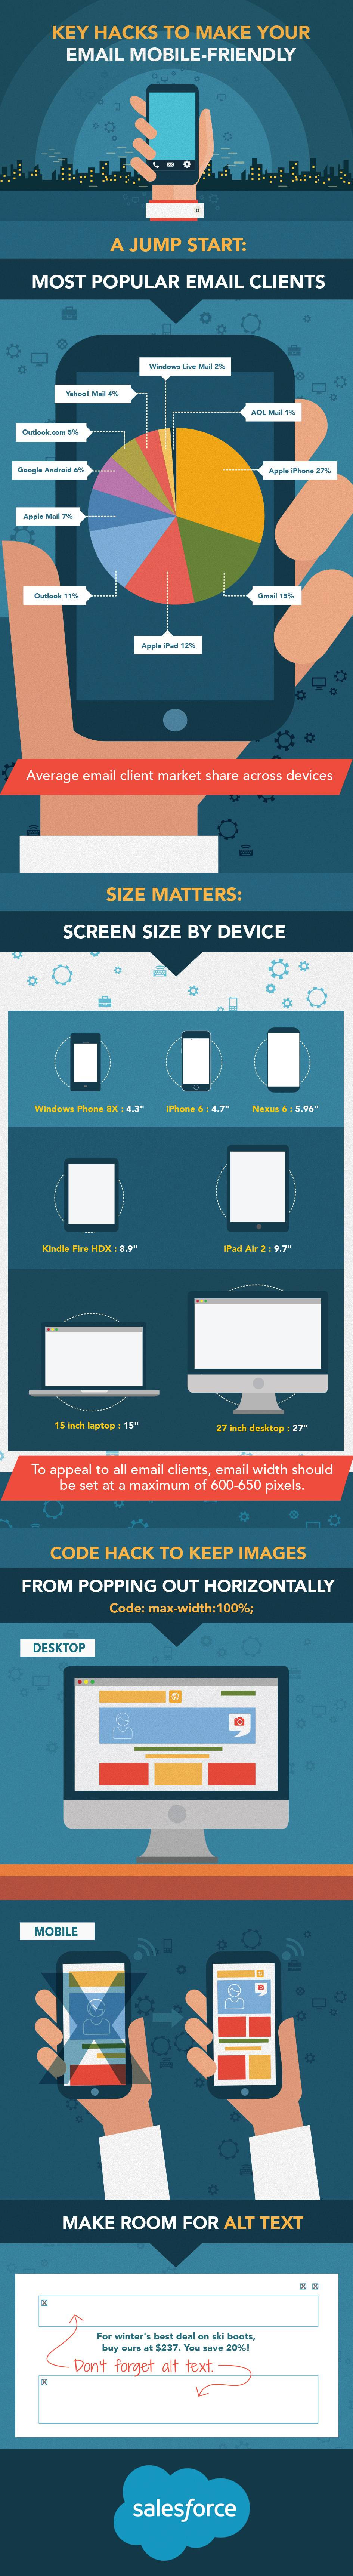 18 Key Hacks to Make Your Email Mobile-Friendly - #infographic